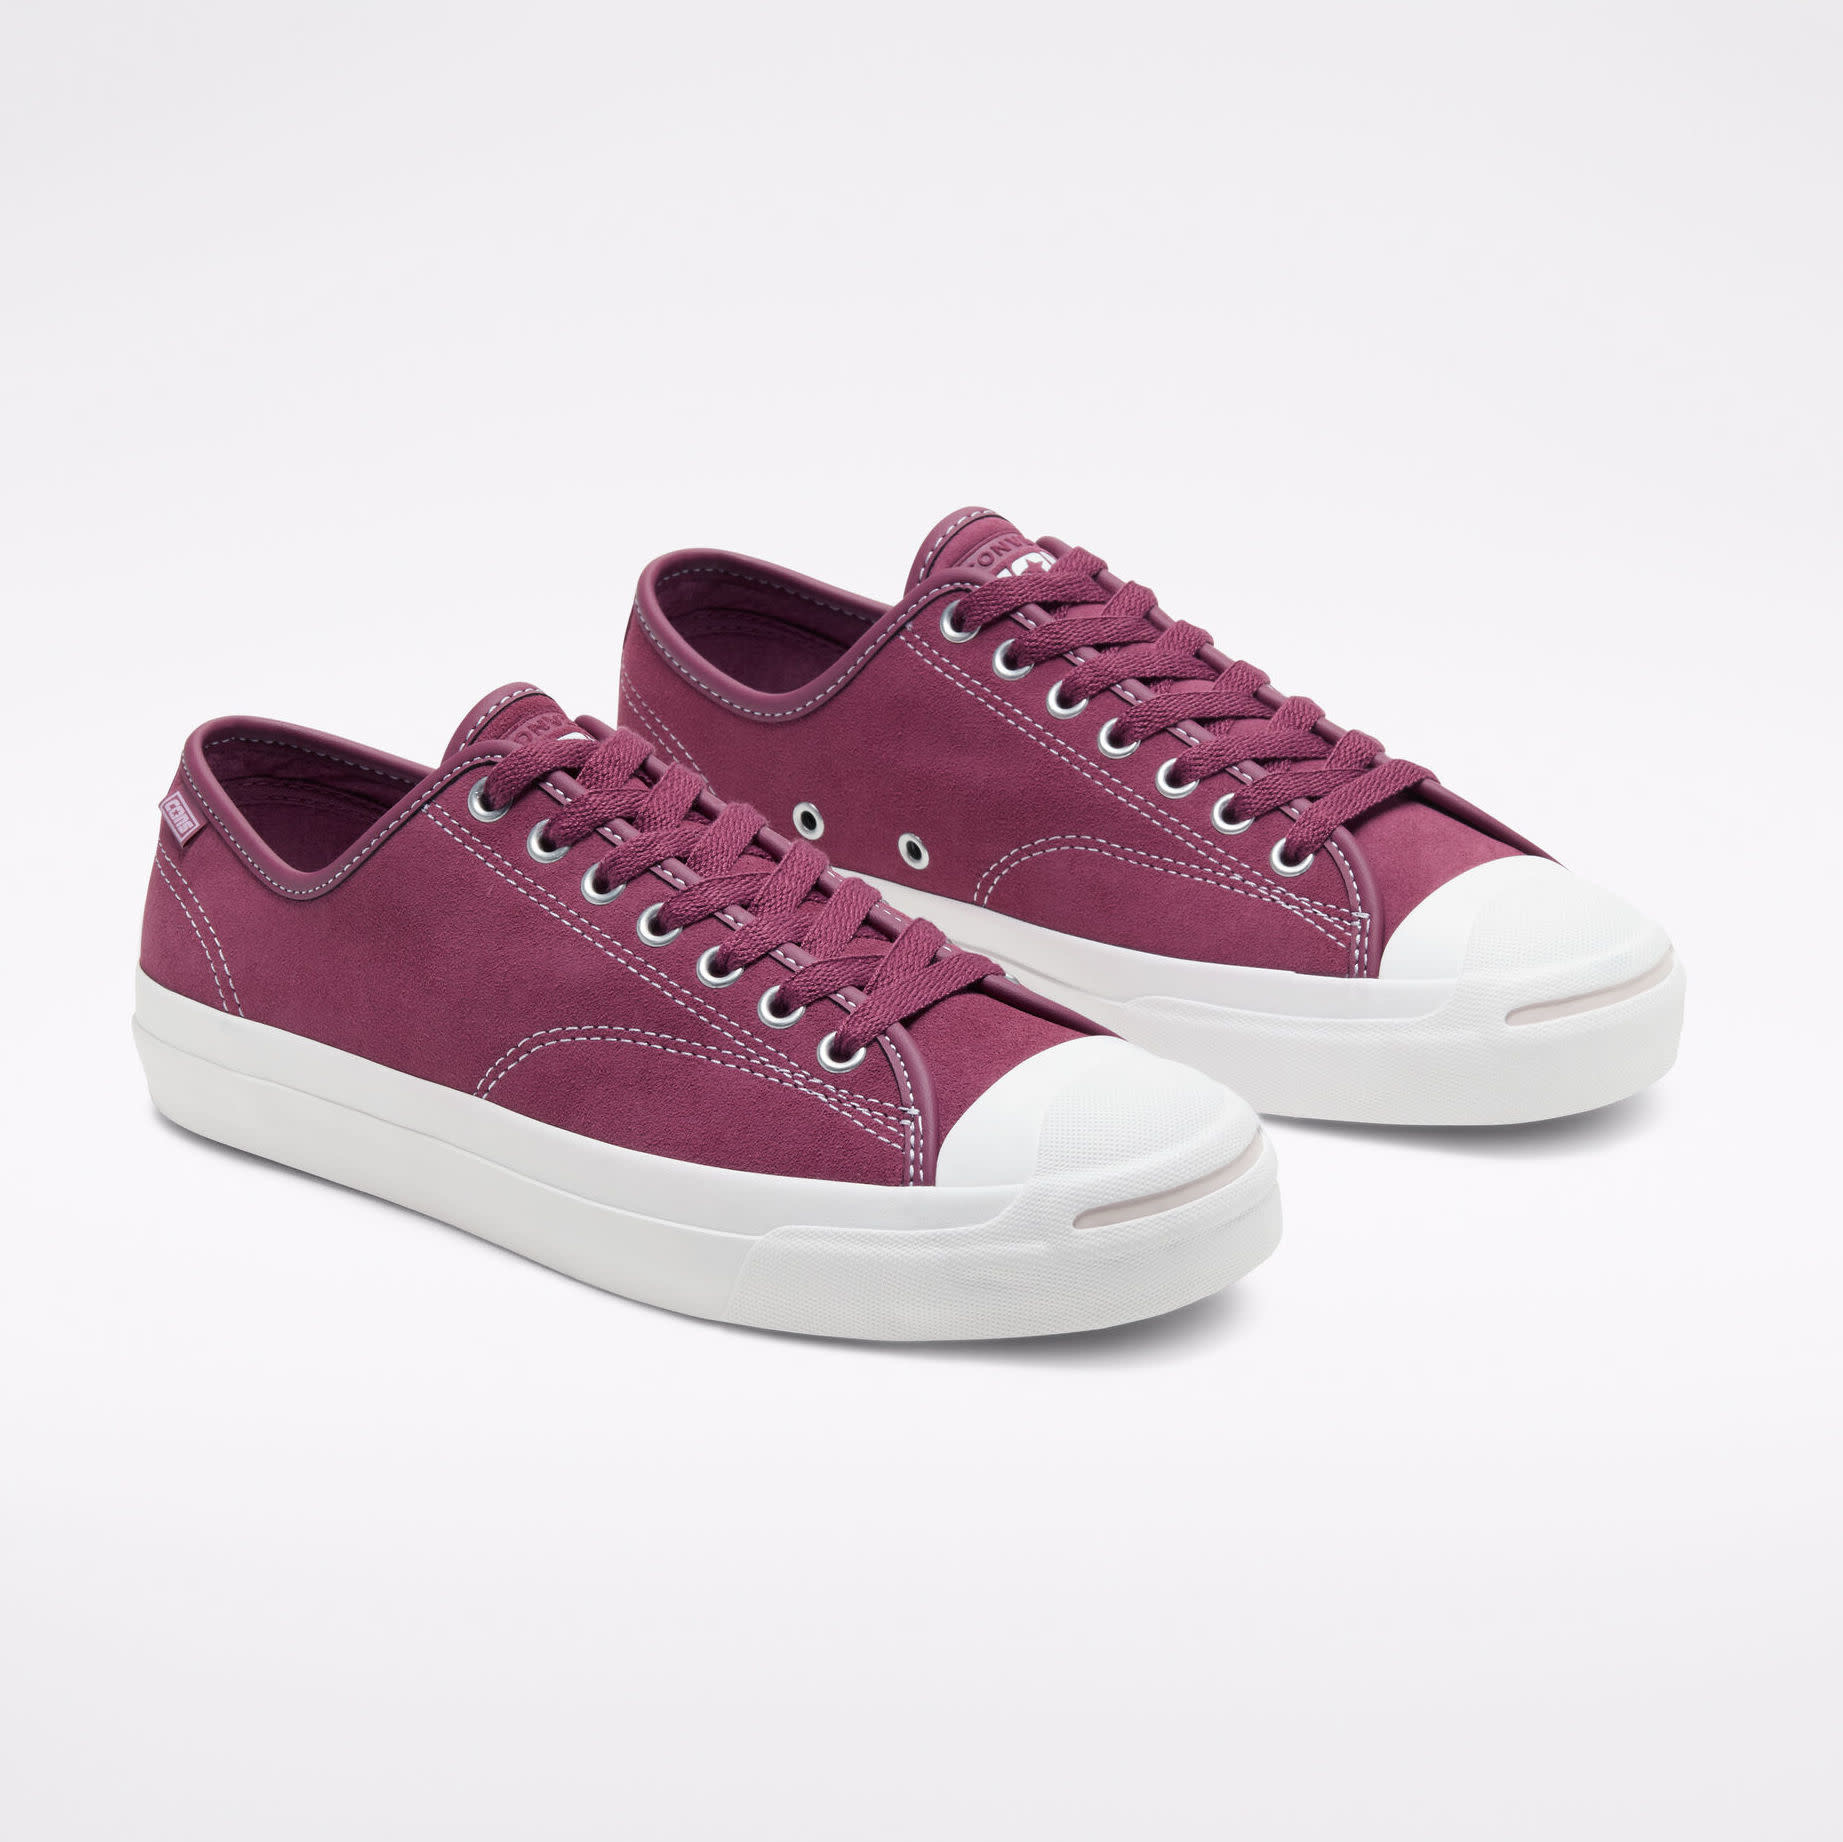 Converse USA Inc. JP Pro OX Suede Mesa Rose/White